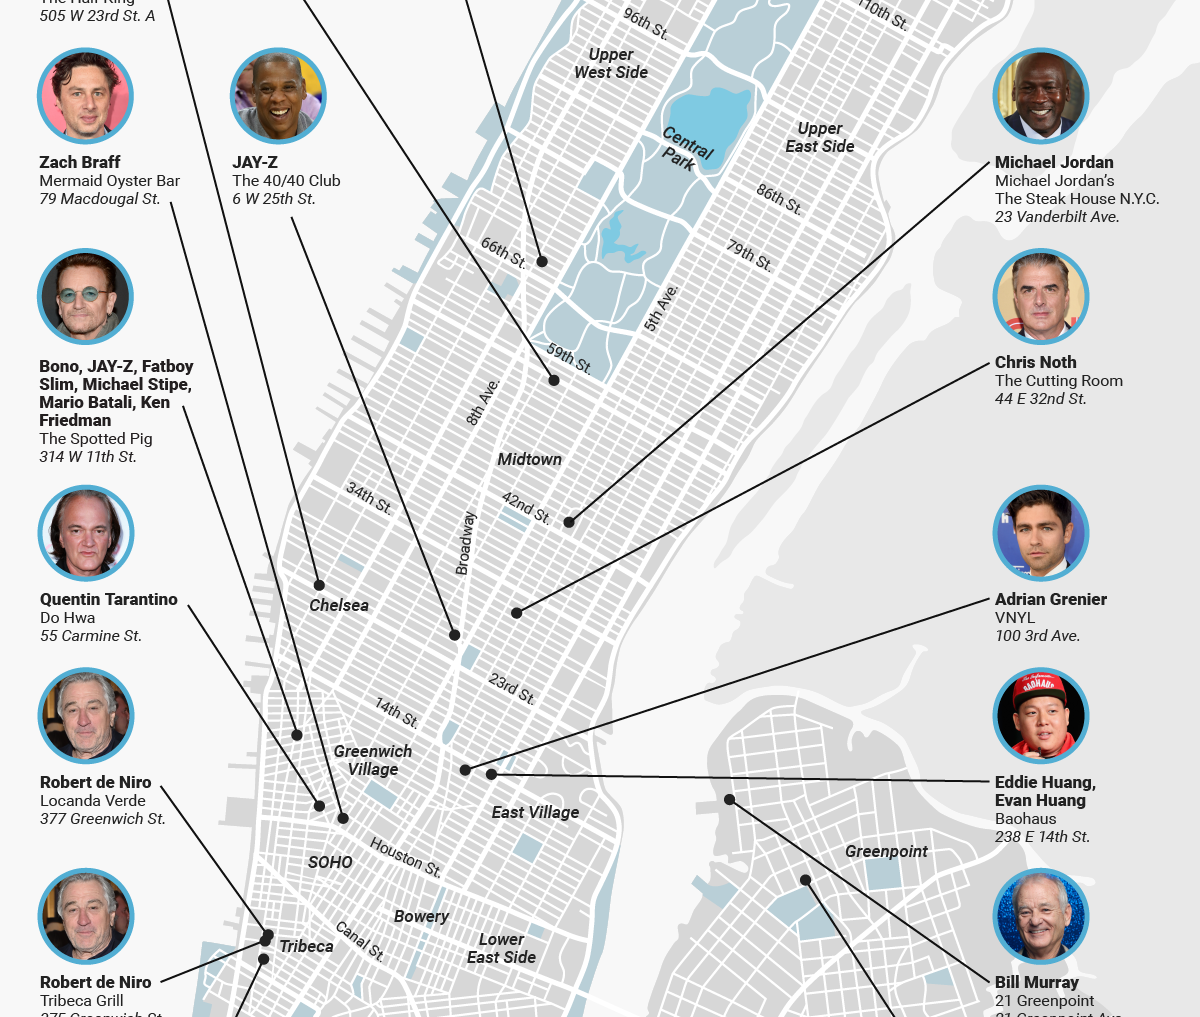 NYC Celebrities Mapping 2020 (MAP)